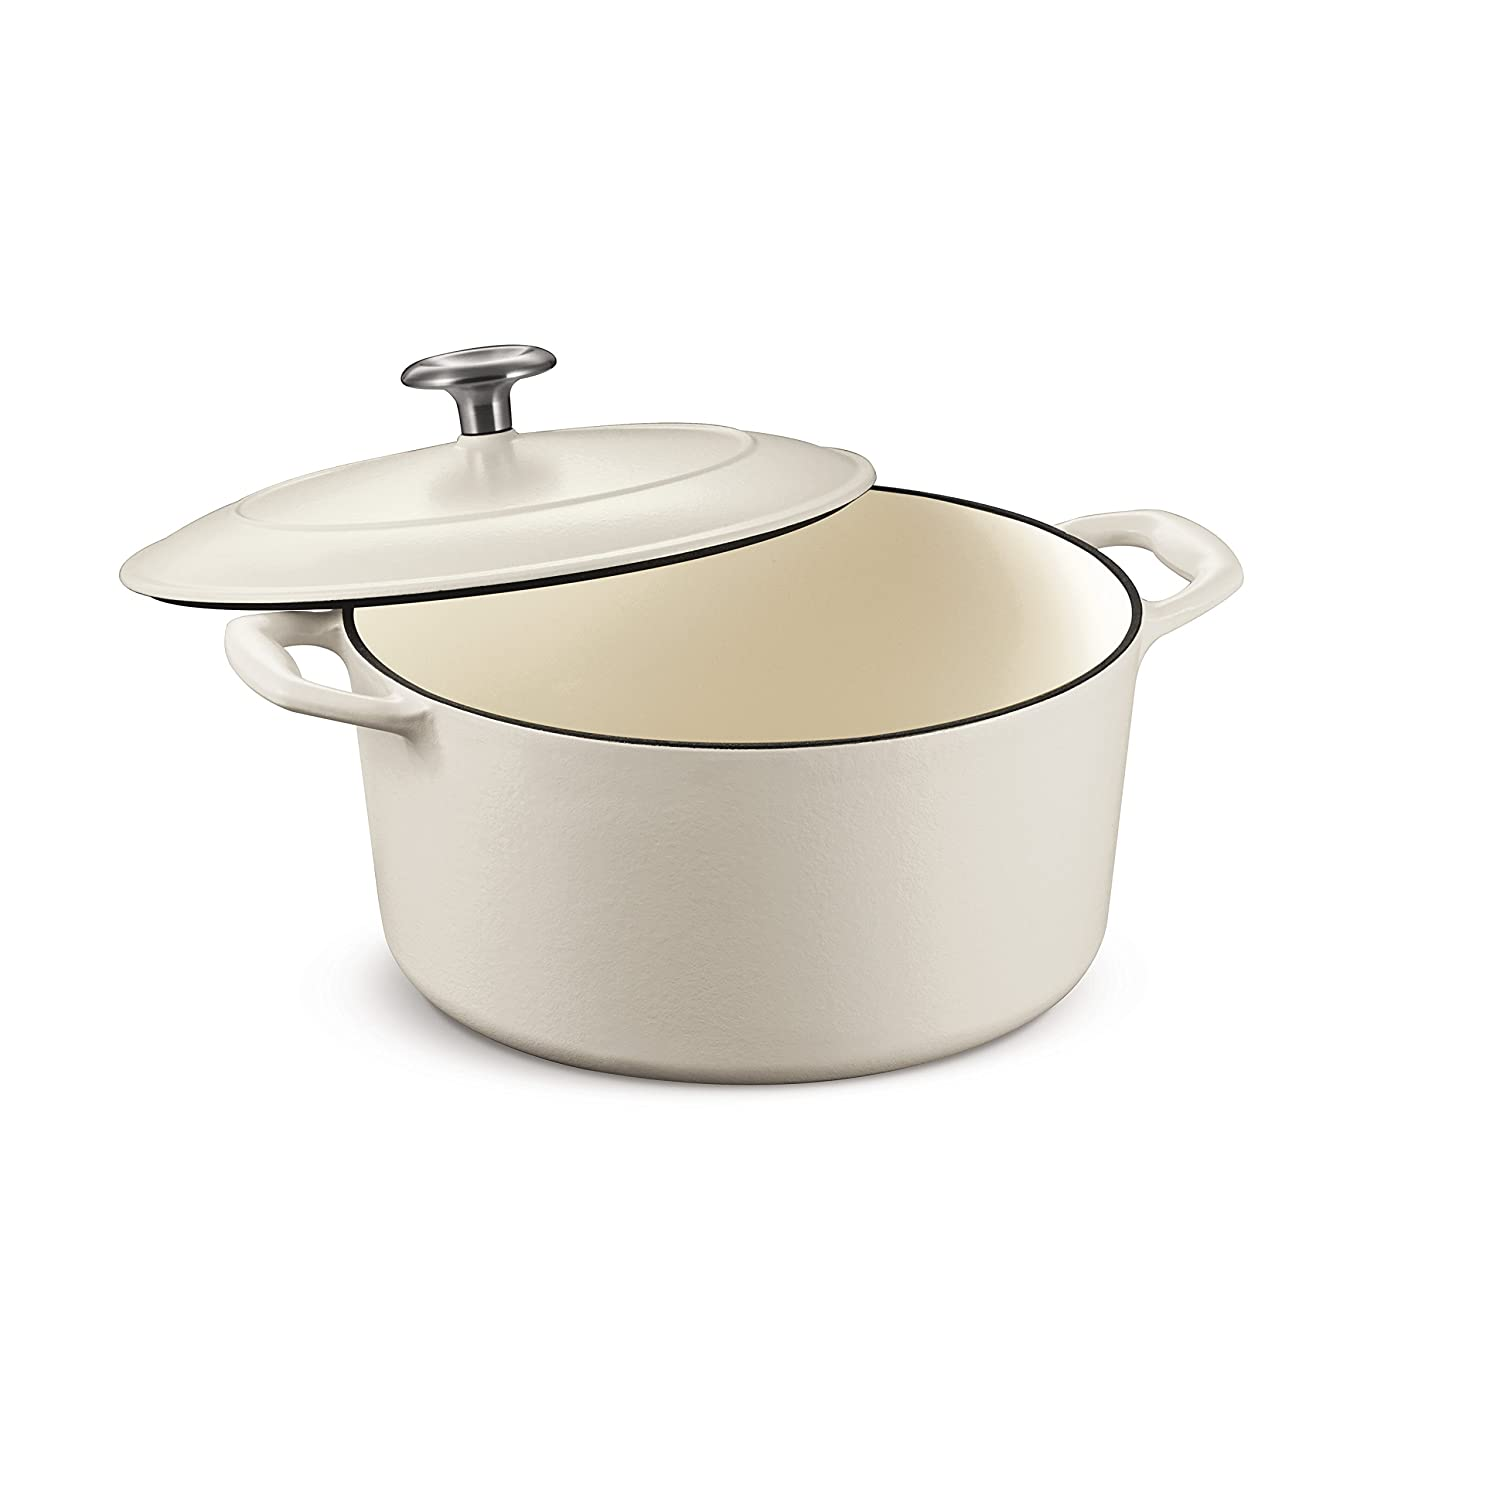 Tramontina 80131/035DS Enameled Cast Iron Covered Round Dutch Oven, 5.5-Quart, Matte White